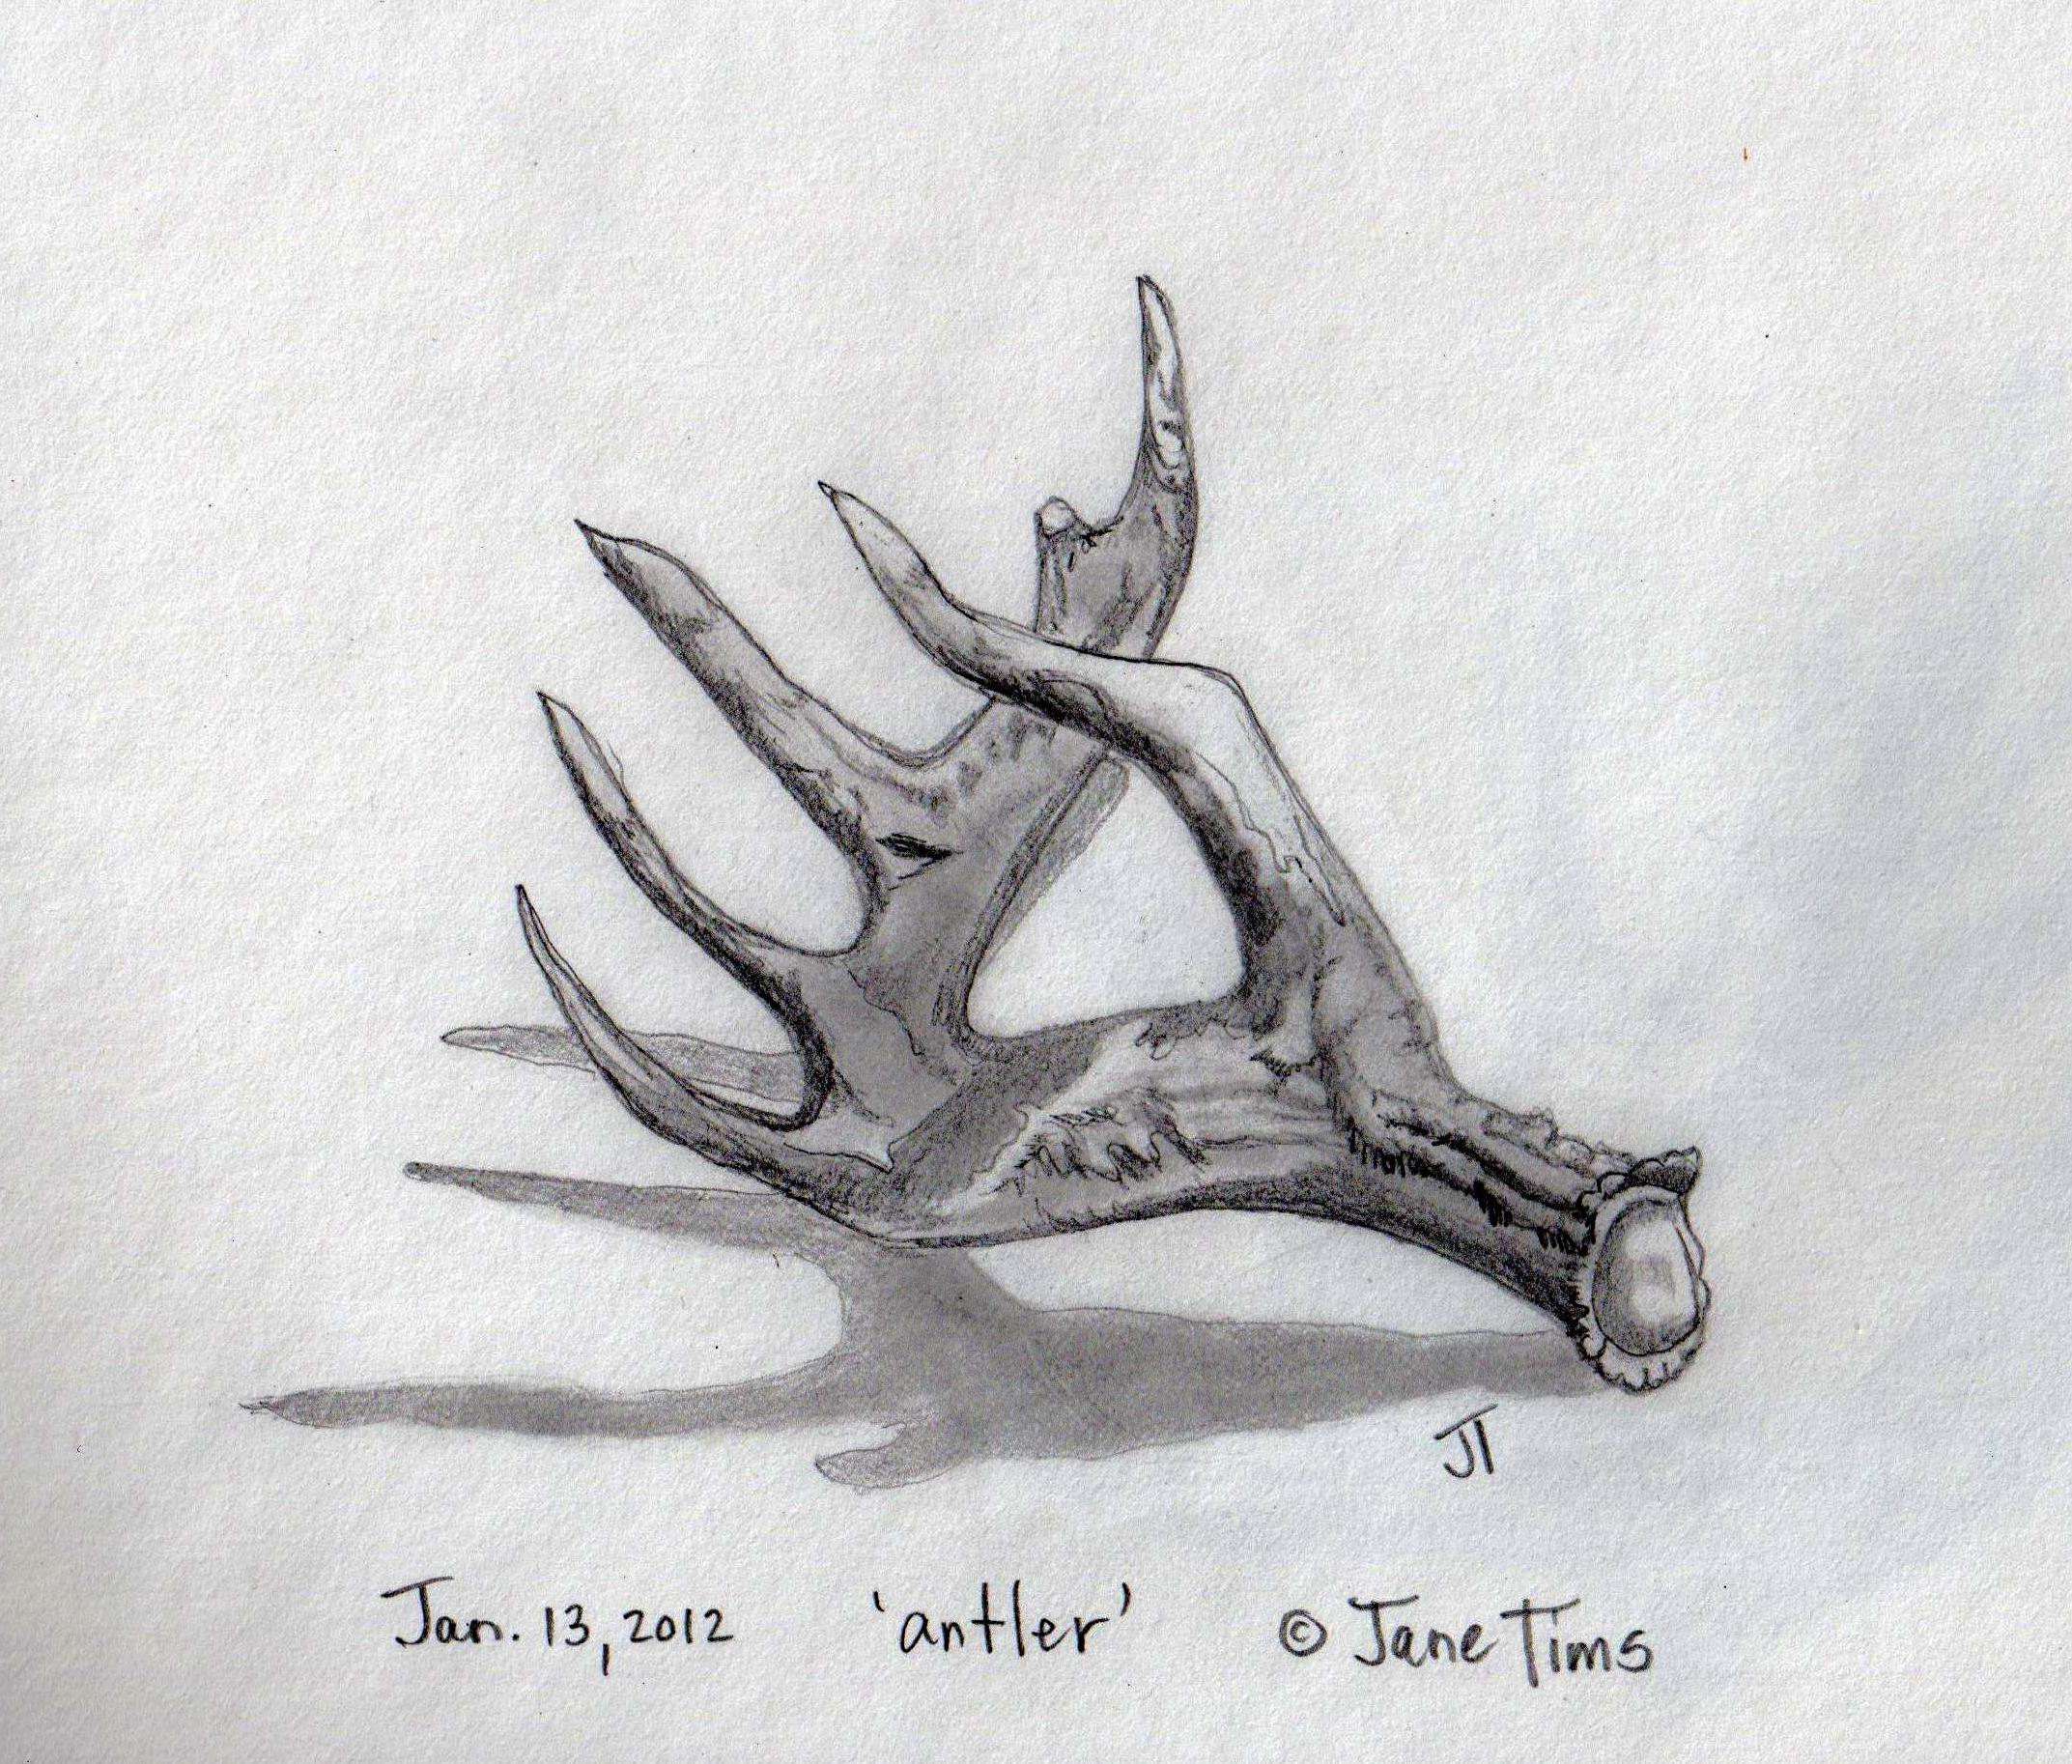 deer antlers drawing easy - photo #20